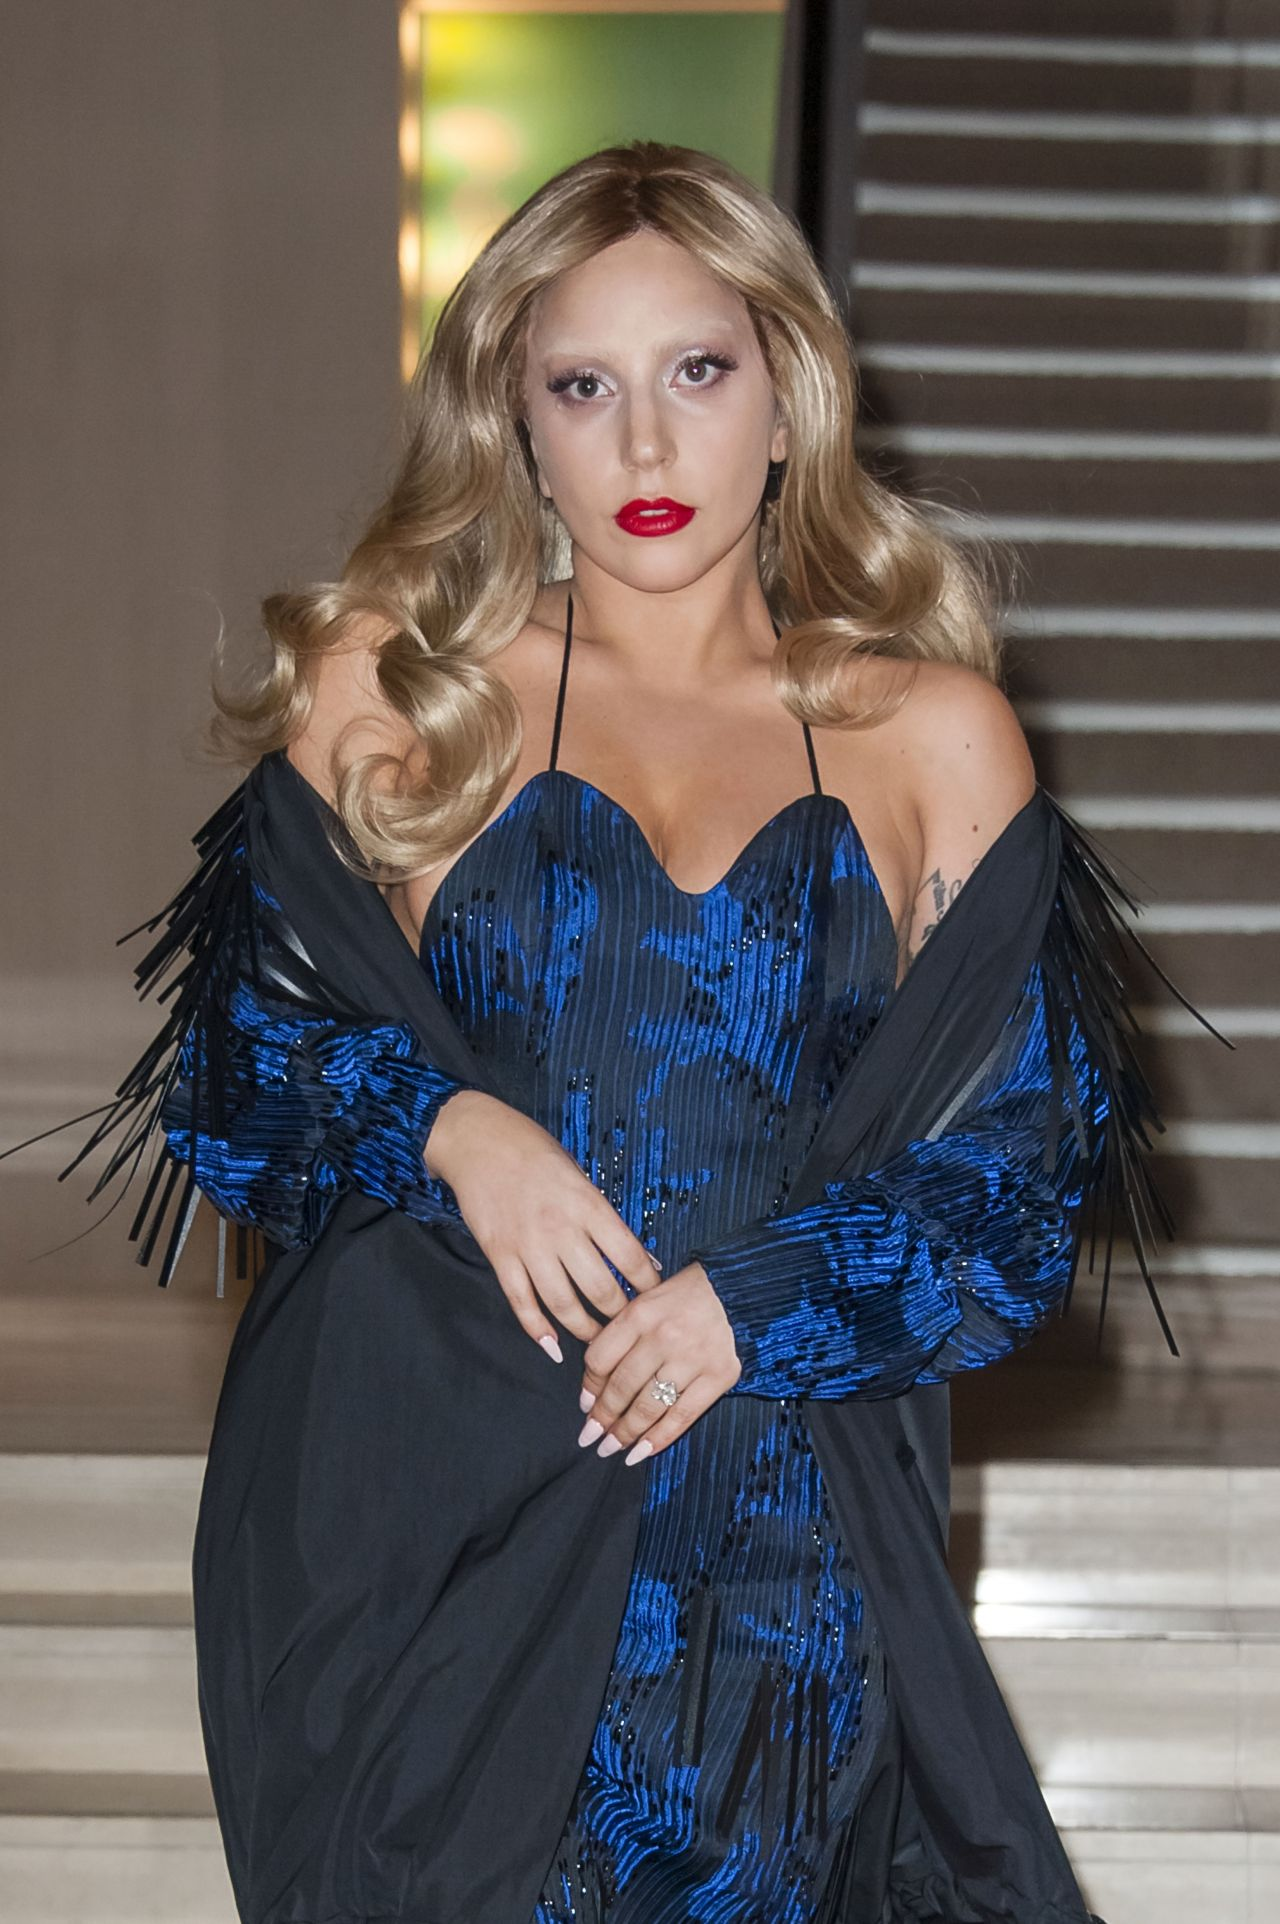 Lady Gaga Style - Shopping at 'Chanel' in Paris, March 2015